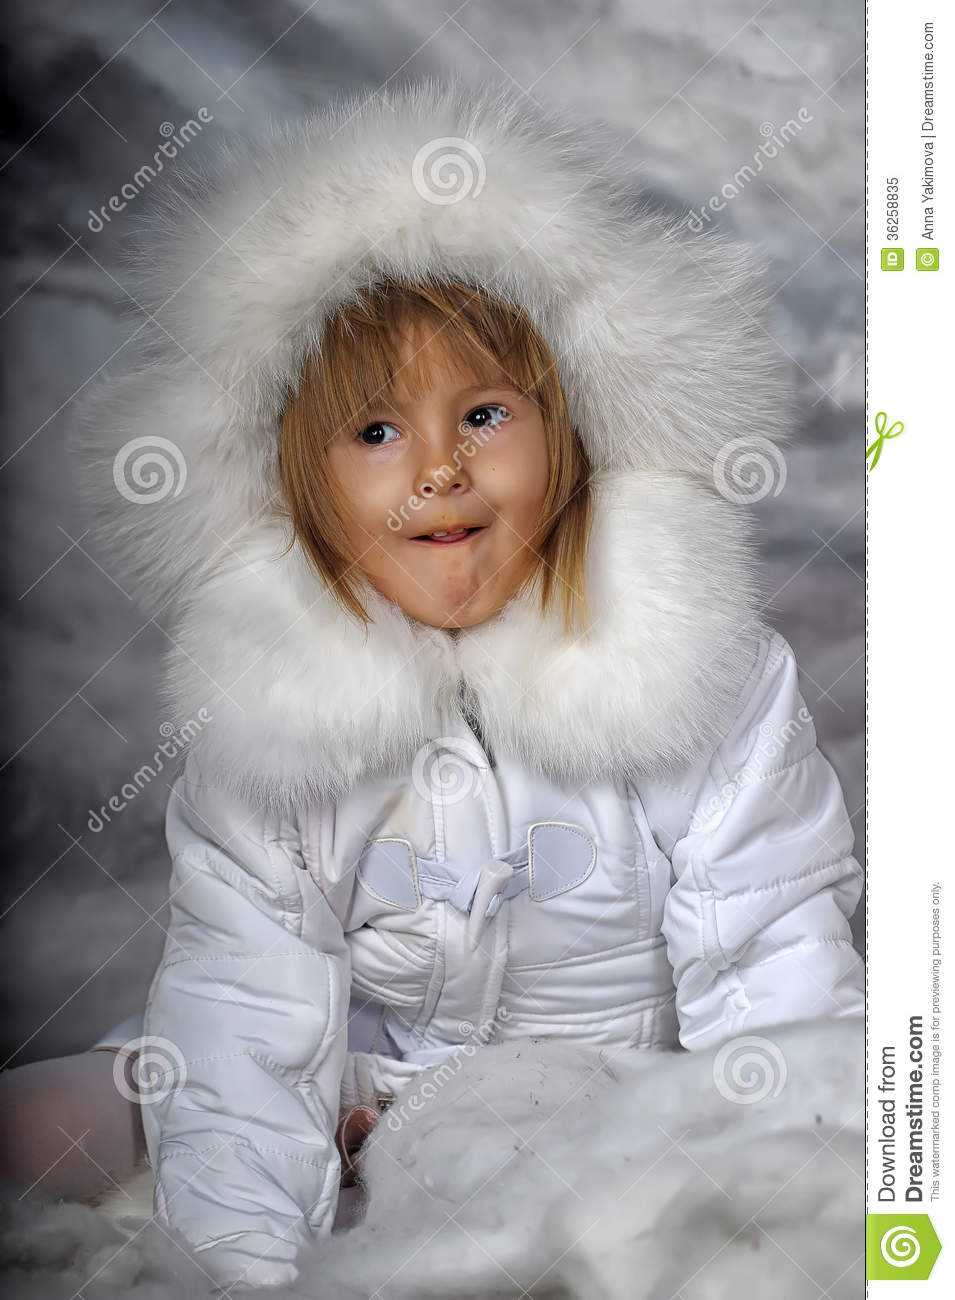 Little Girl In White Winter Coat Royalty Free Stock Photo - Image